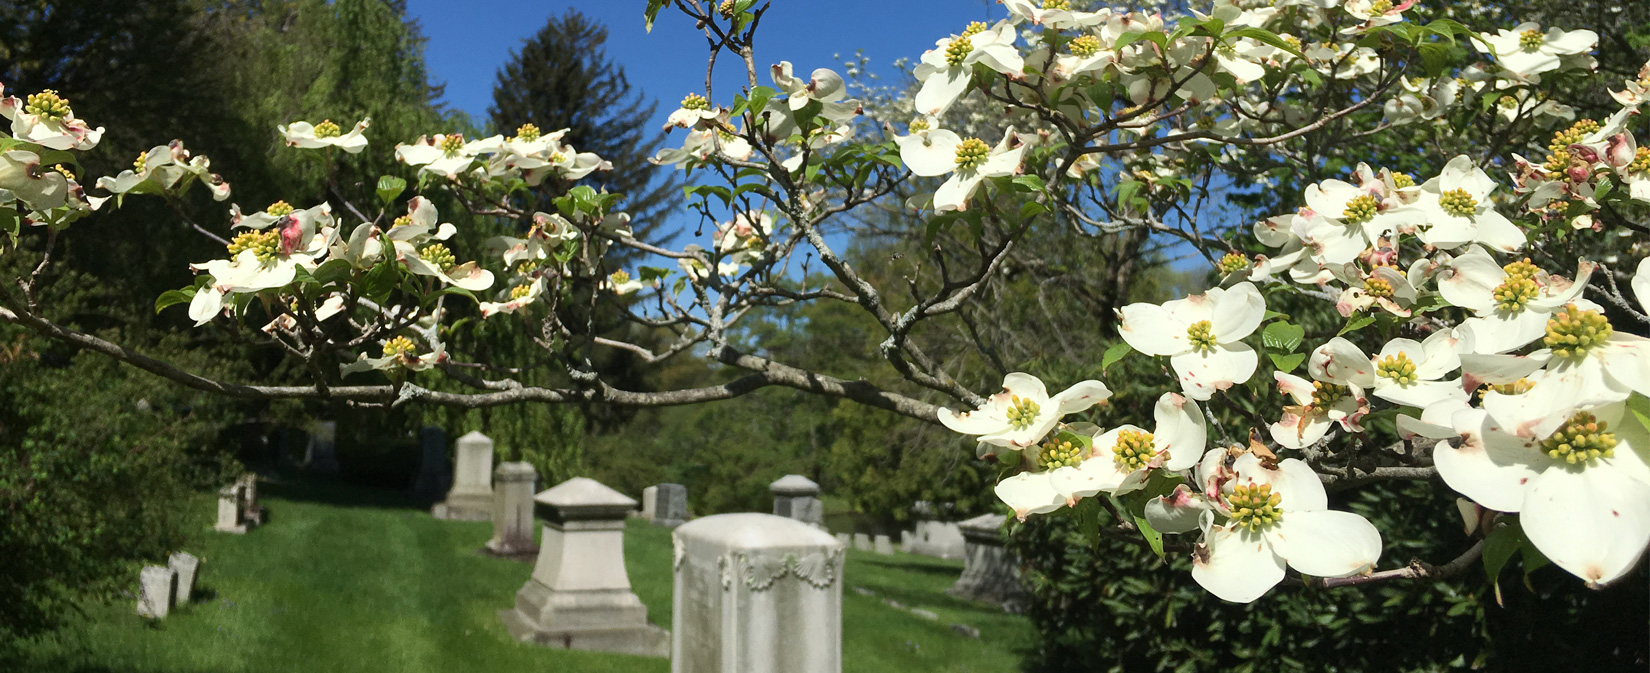 Dogwood in bloom at Newton Cemetery